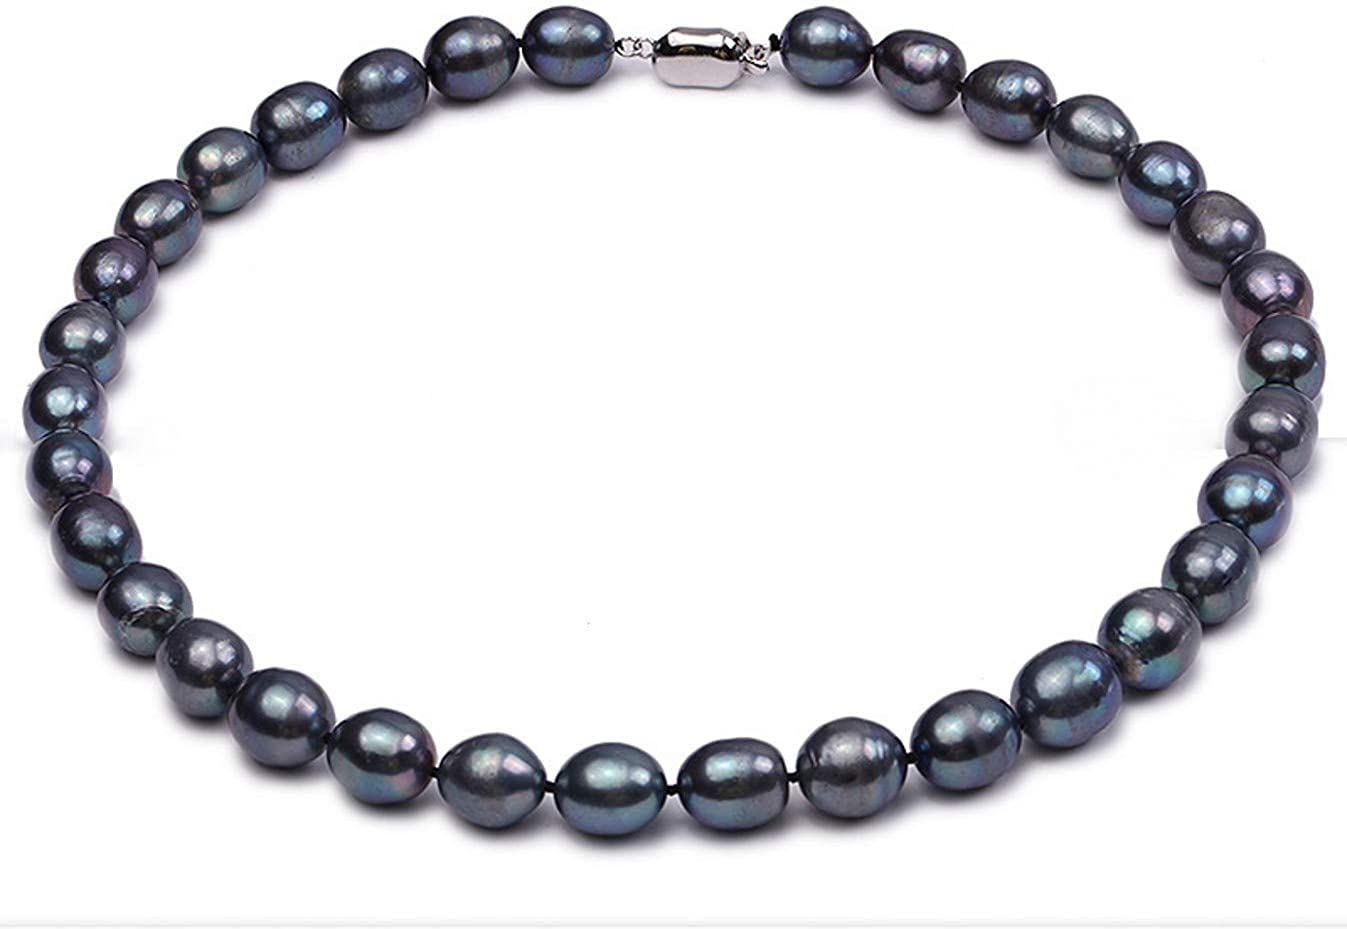 JYX 10-11mm Black Oval Freshwater Single Pearl Necklace Pearl Strand 18